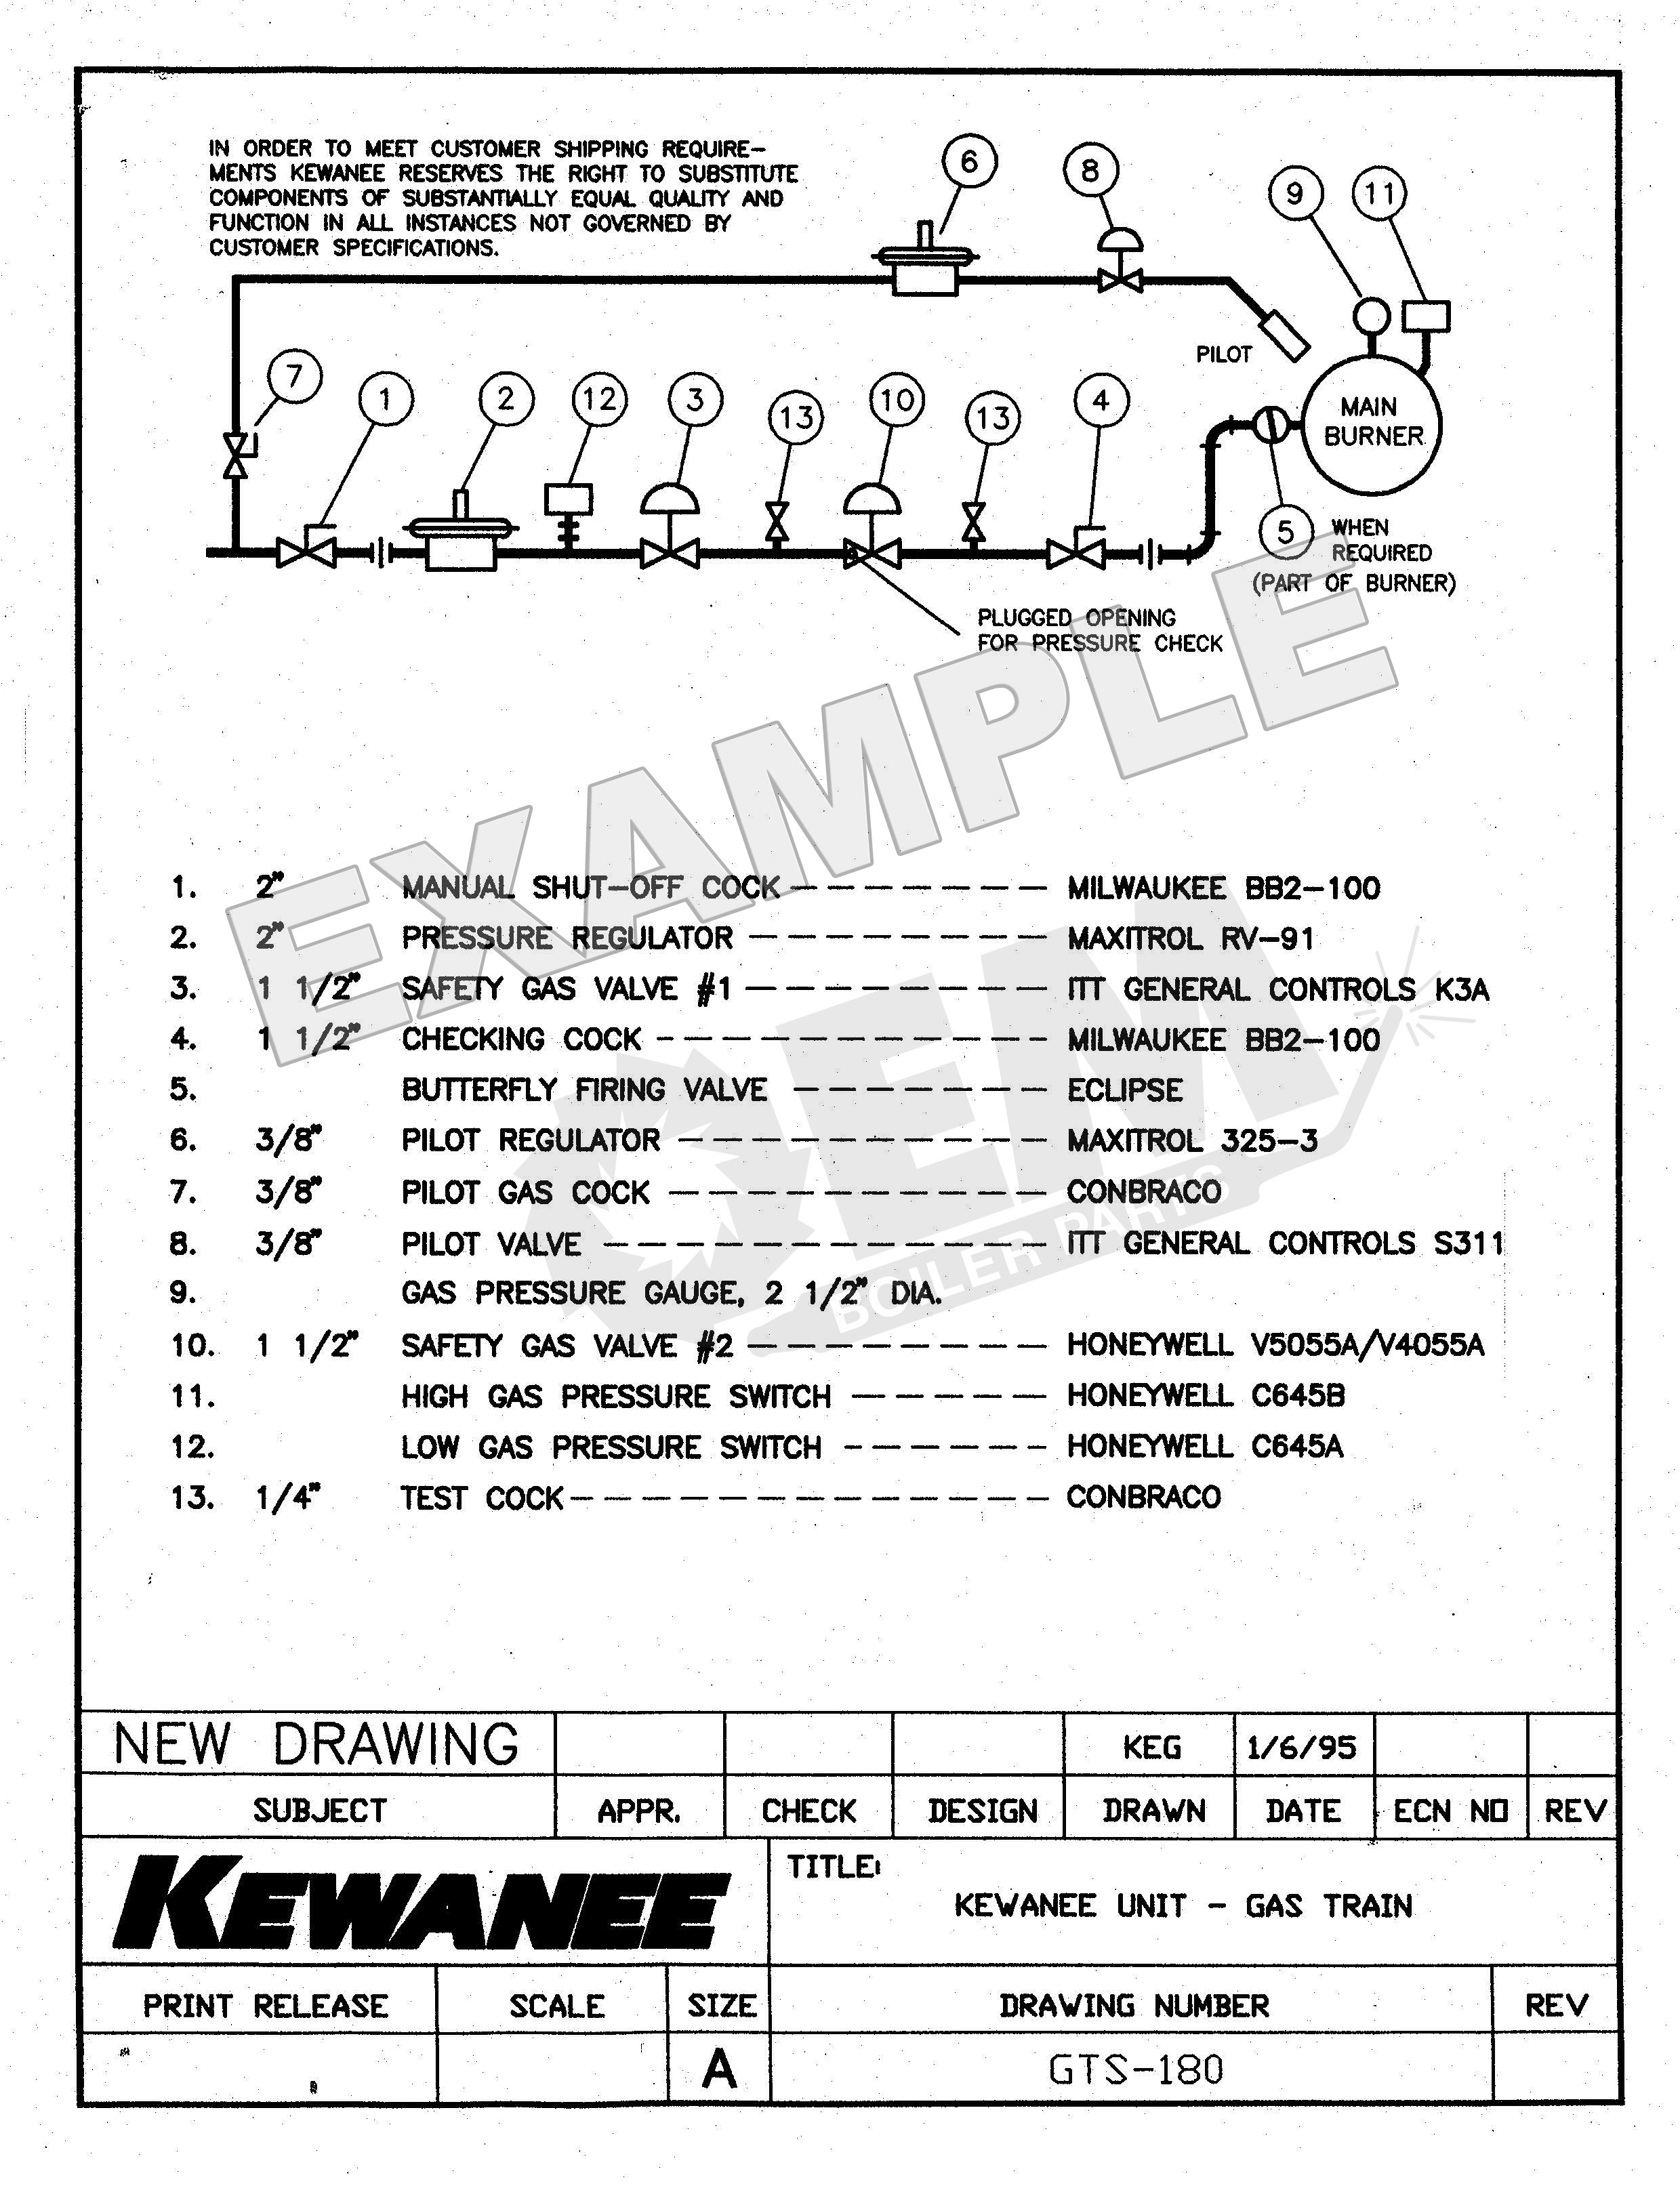 Kewanee Job Specific Technical Data